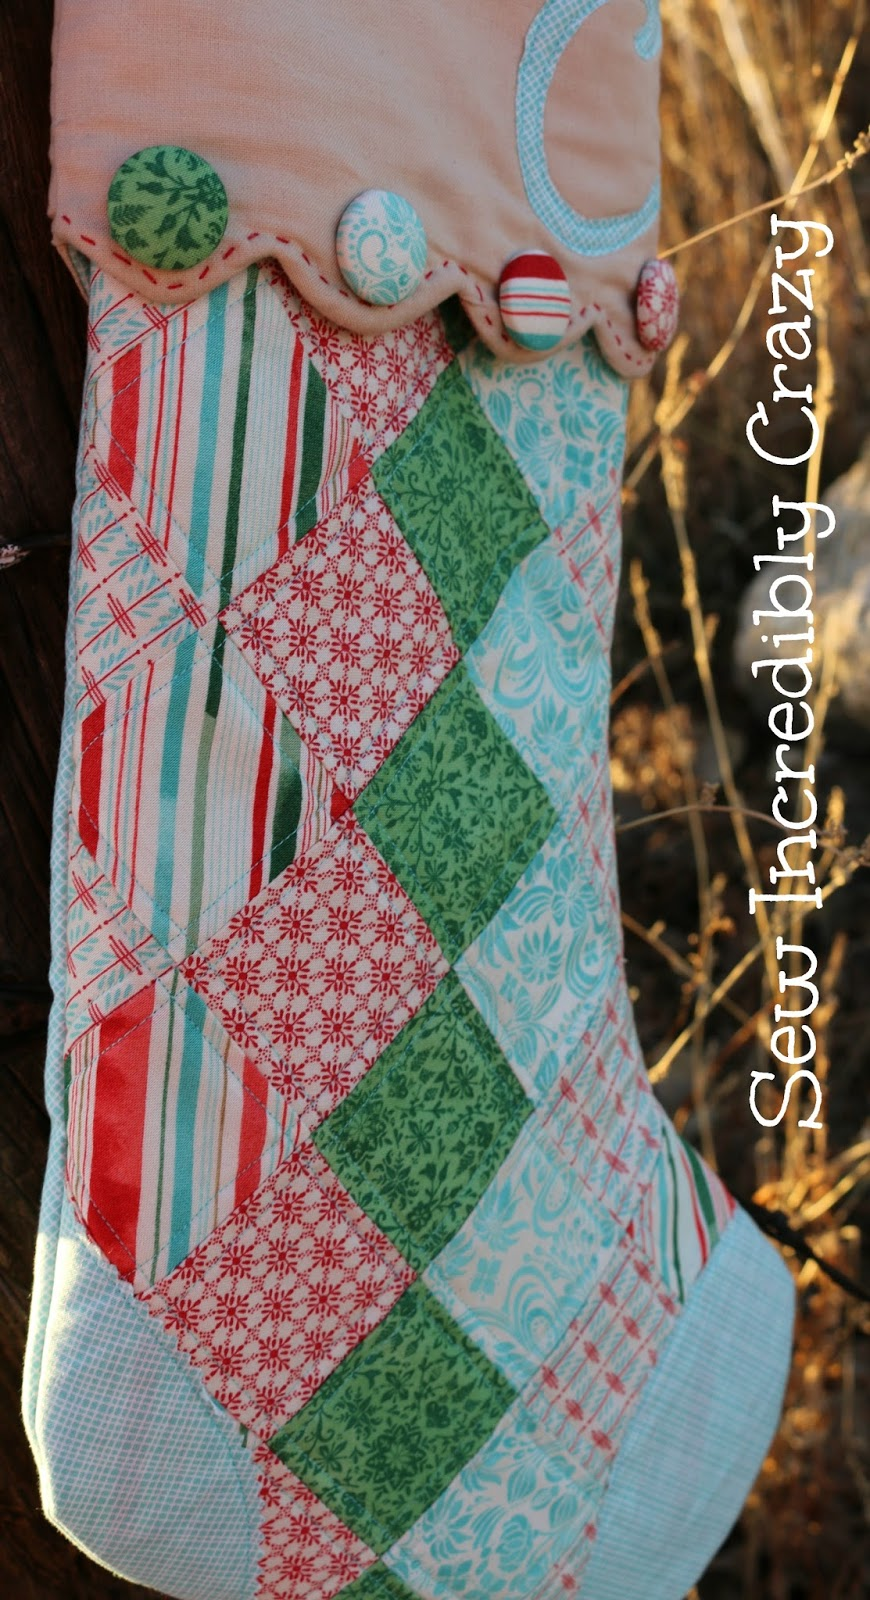 Sew Incredibly Crazy My First Christmas Stocking